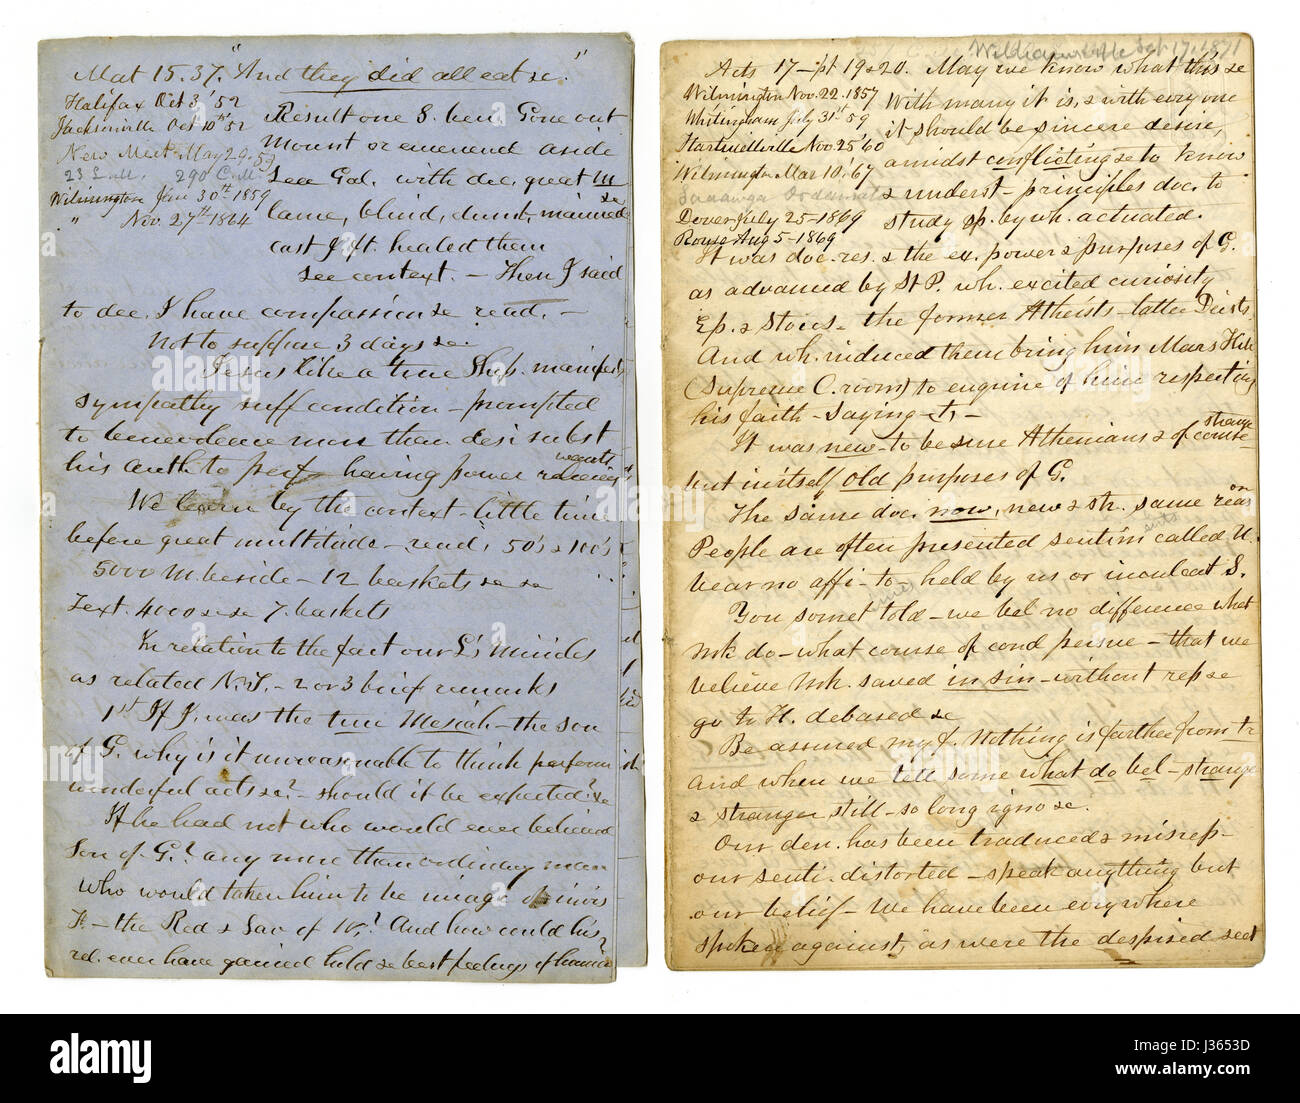 Antique c1860 hand written sermon from a traveling preacher. The one on the left draws from Matthew 15:37 'And - Stock Image